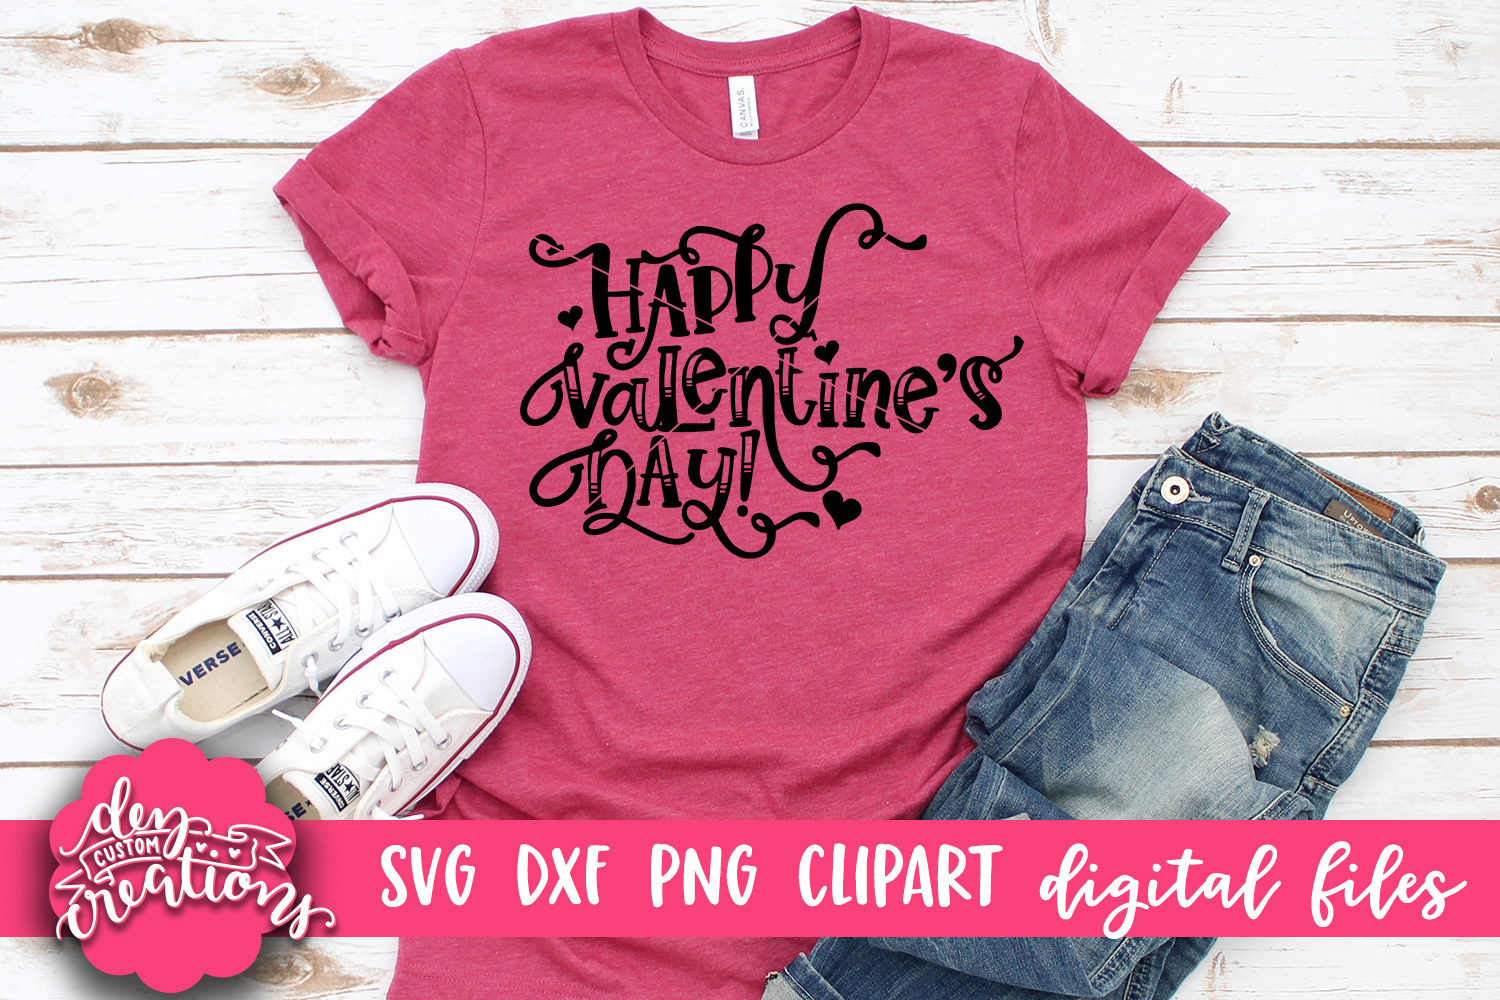 Happy Valentine's Day - SVG DXF PNG - Digital Craft File example image 2